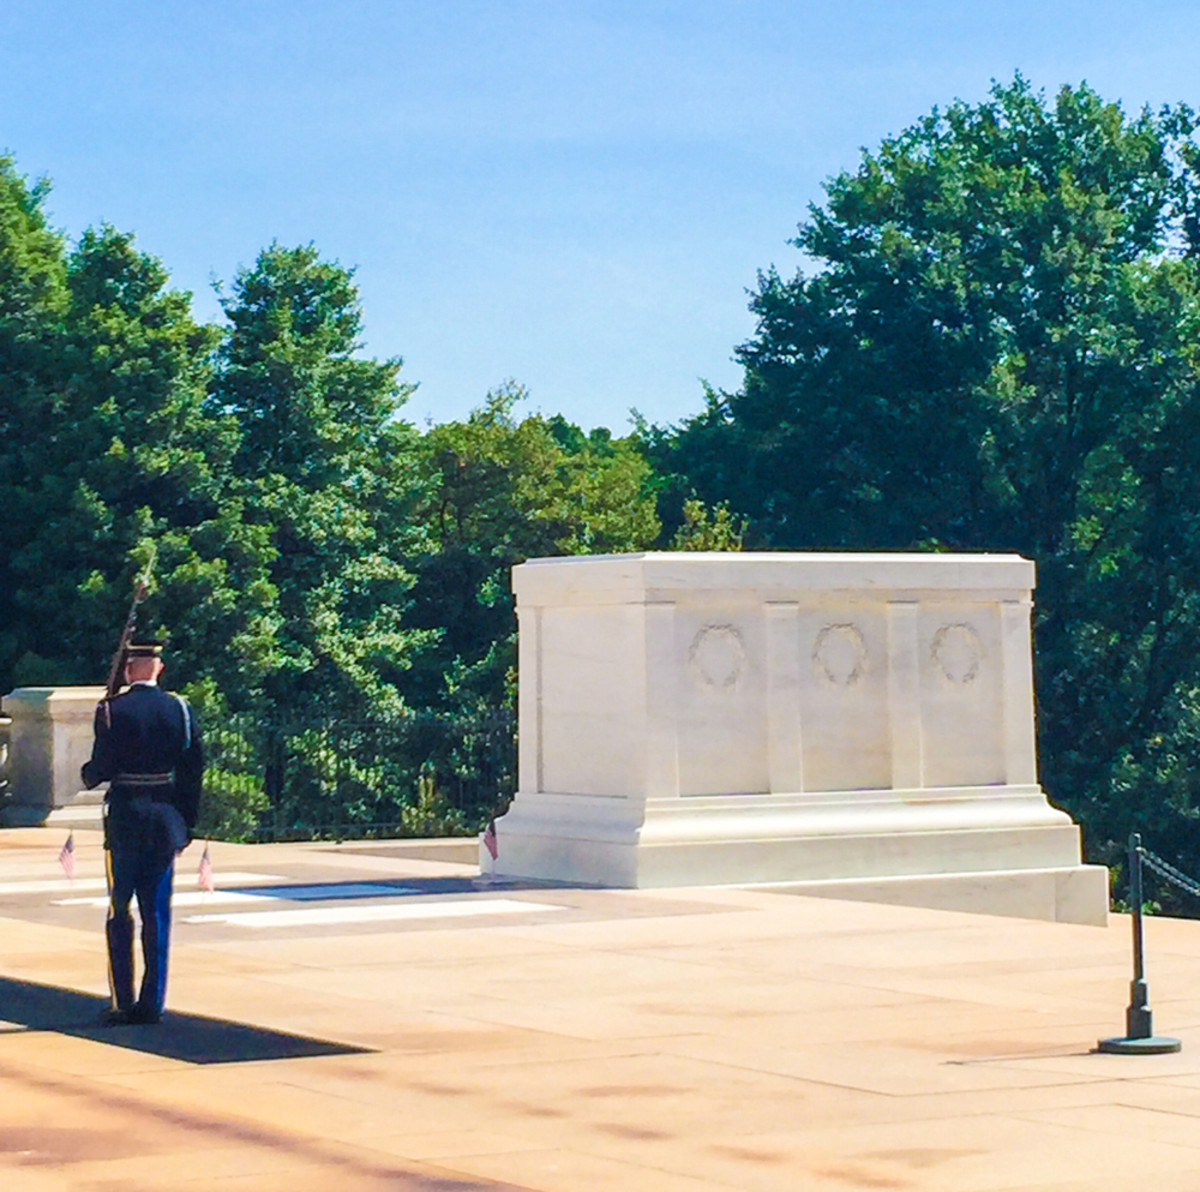 On Memorial Day tour riders visited the Tomb of the Unknown Soldier at Arlington National Cemetery.